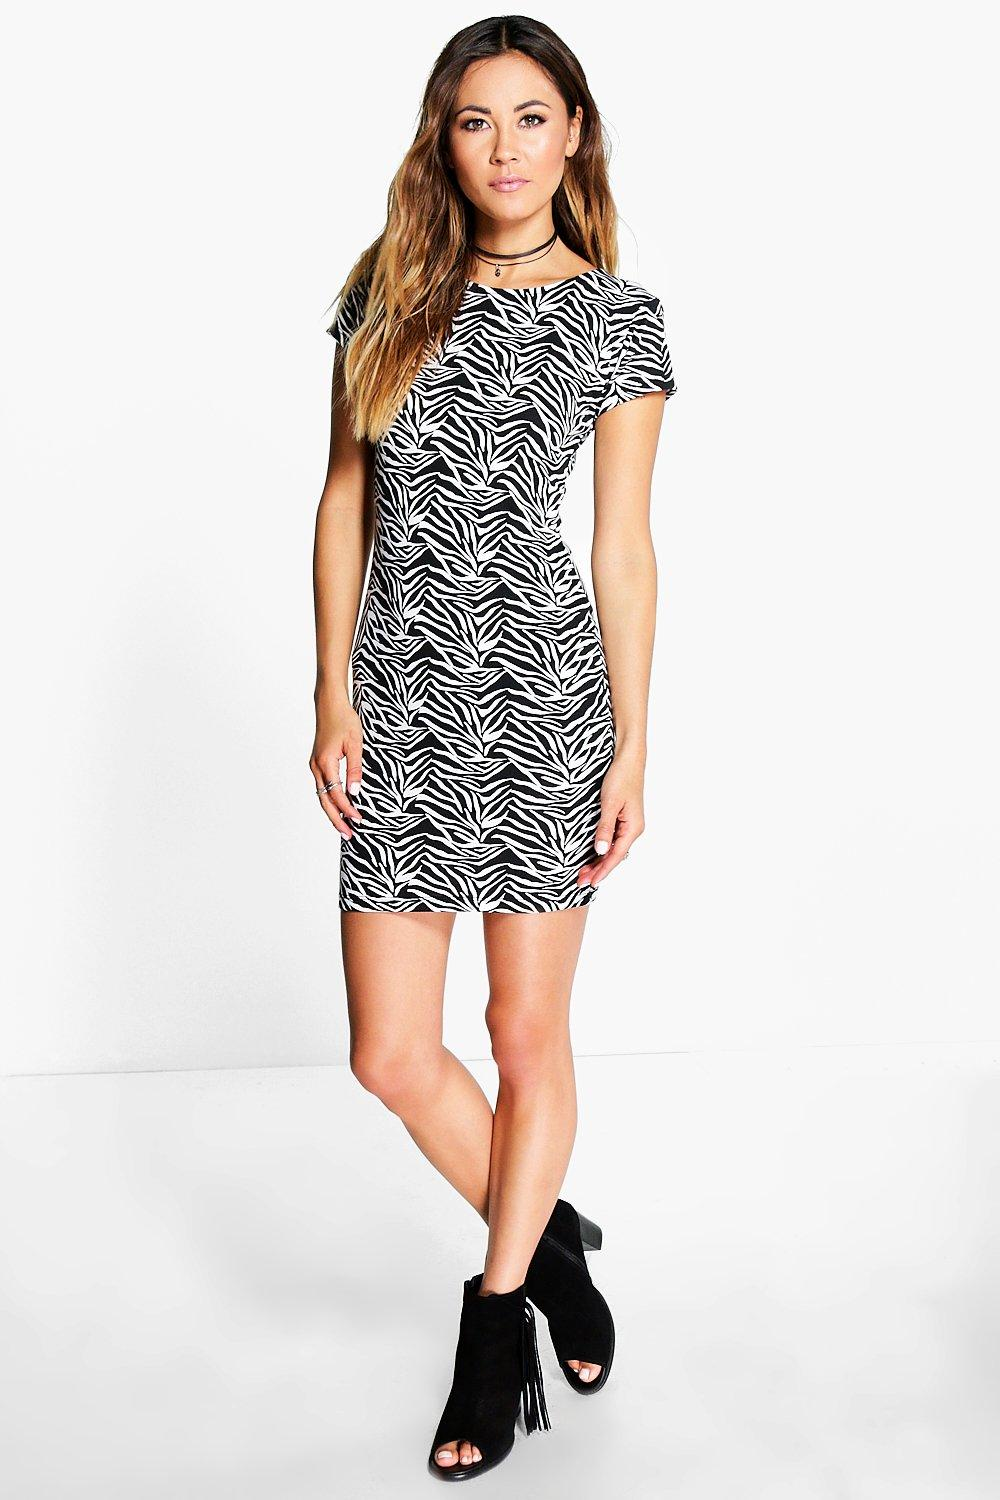 Lo Zebra Print Cap Sleeved Bodycon Dress